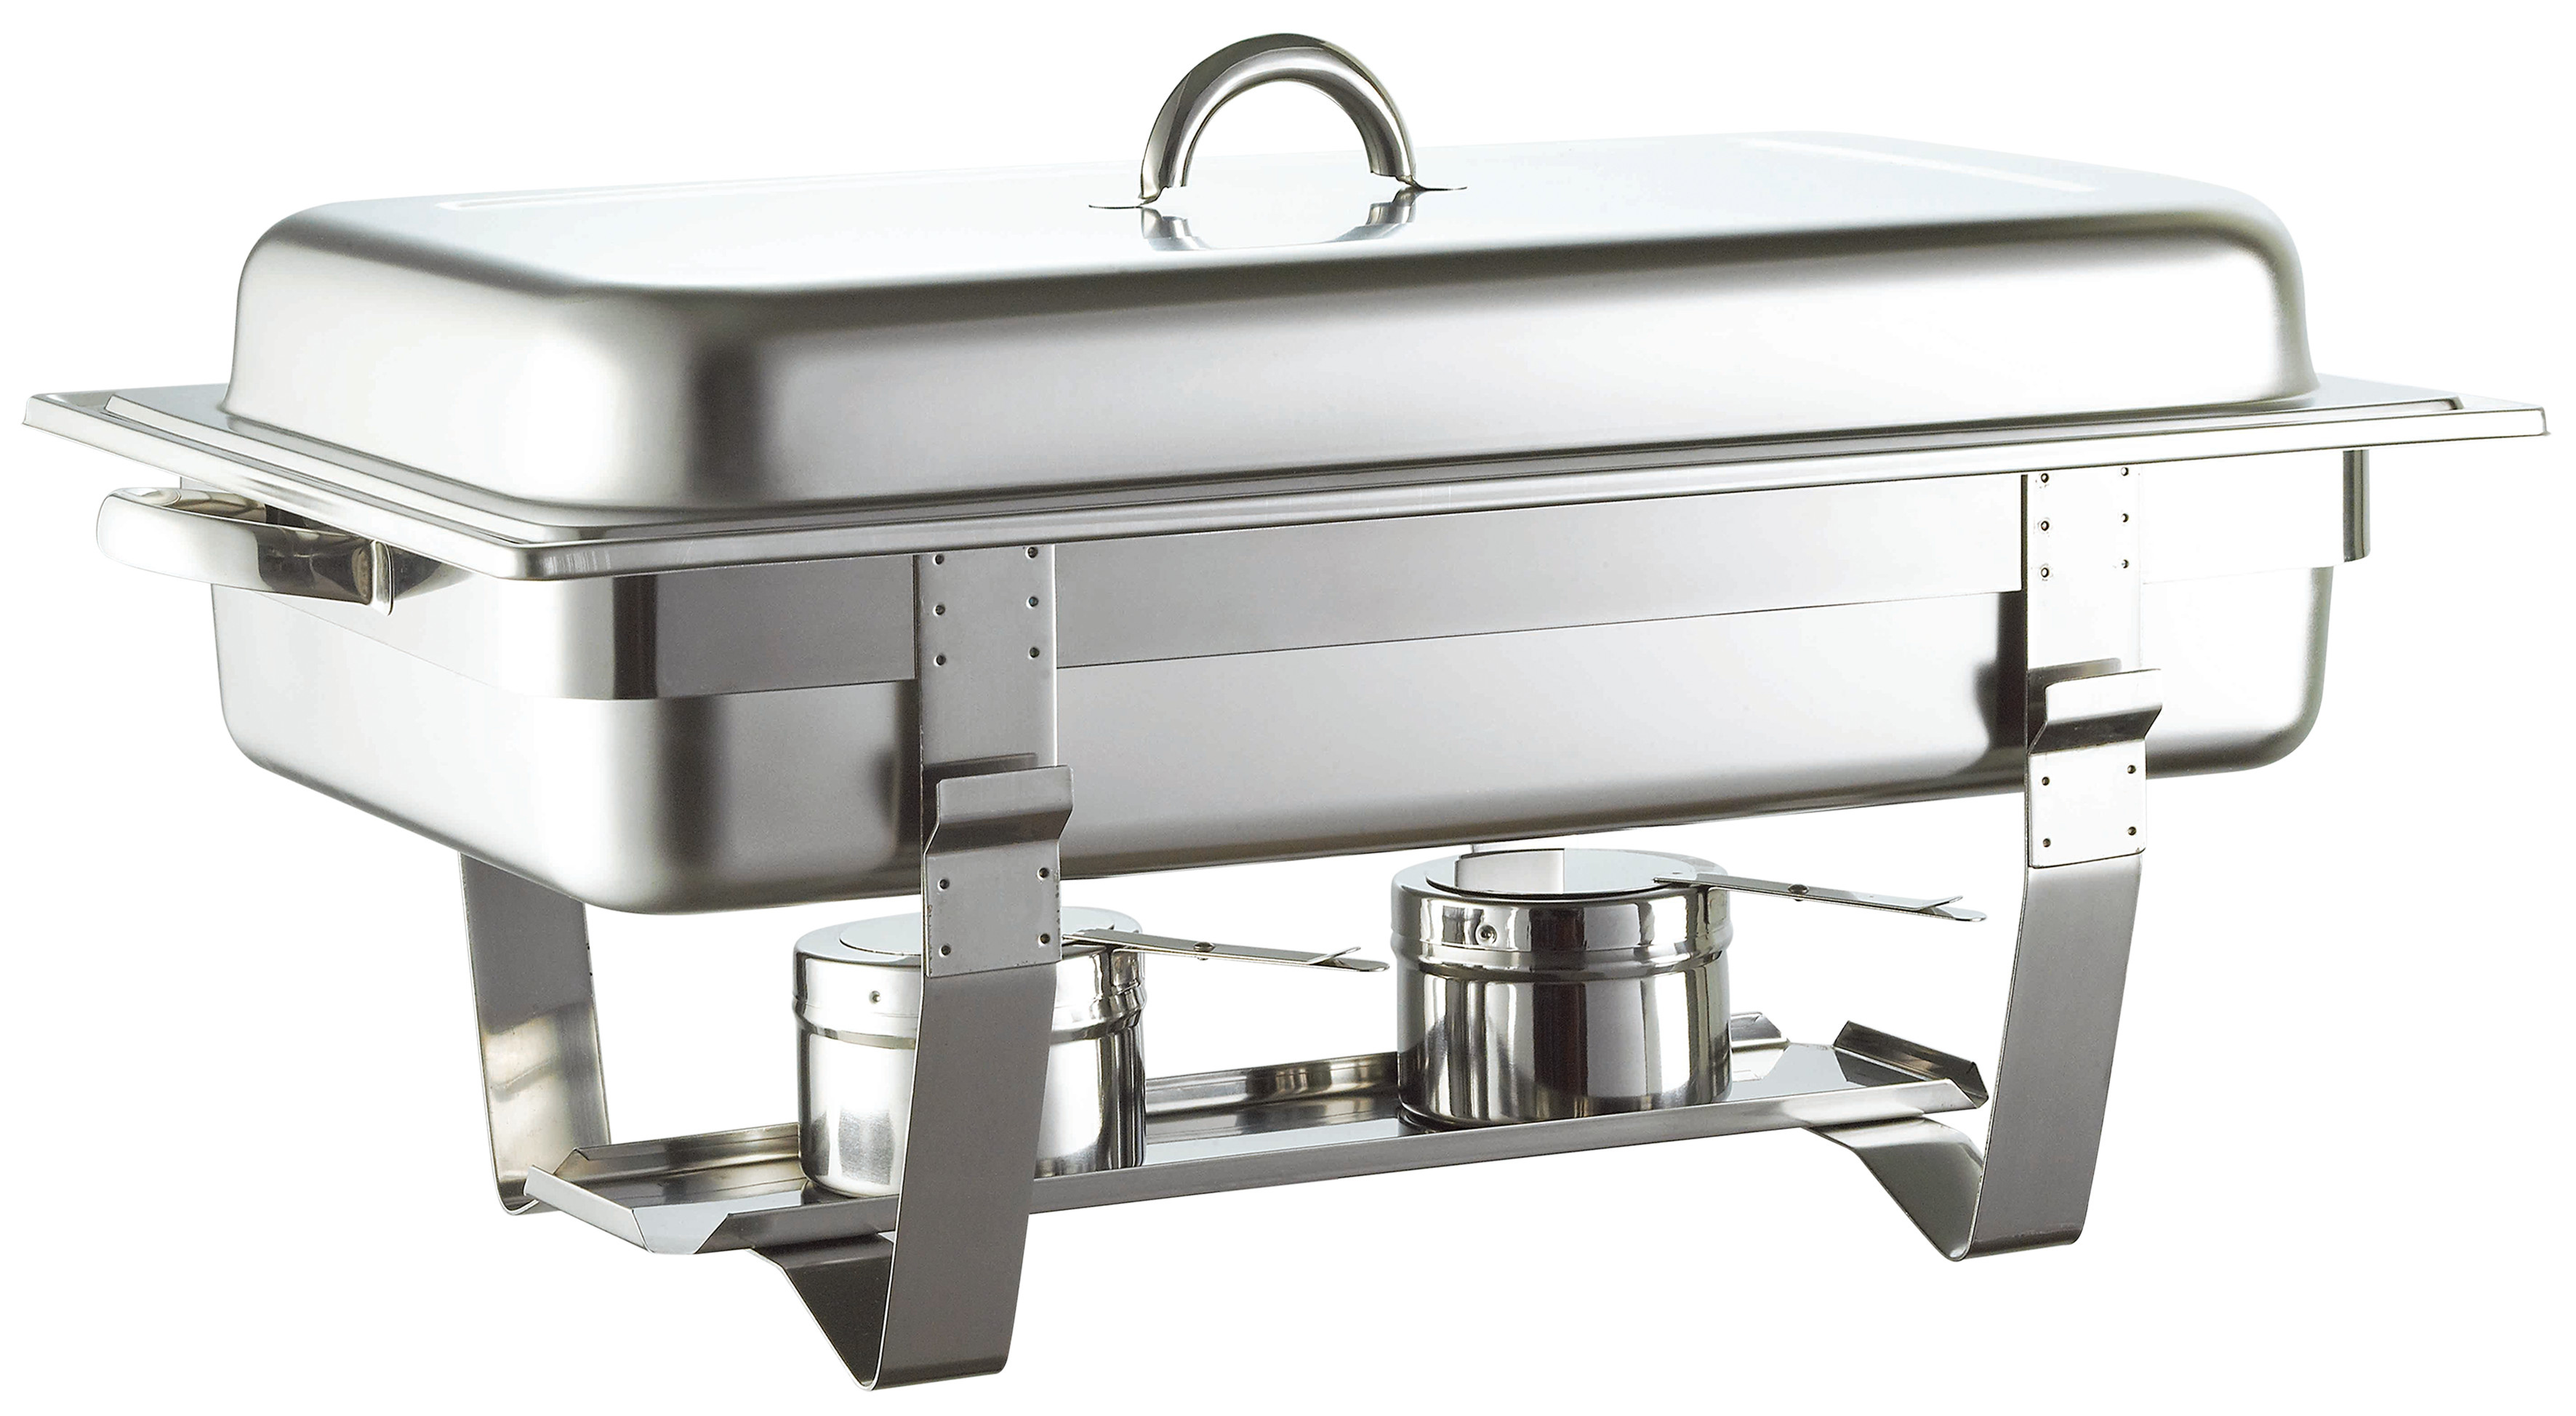 9 liter good quality economic stainless steel chafing dish/buffet stove for sale